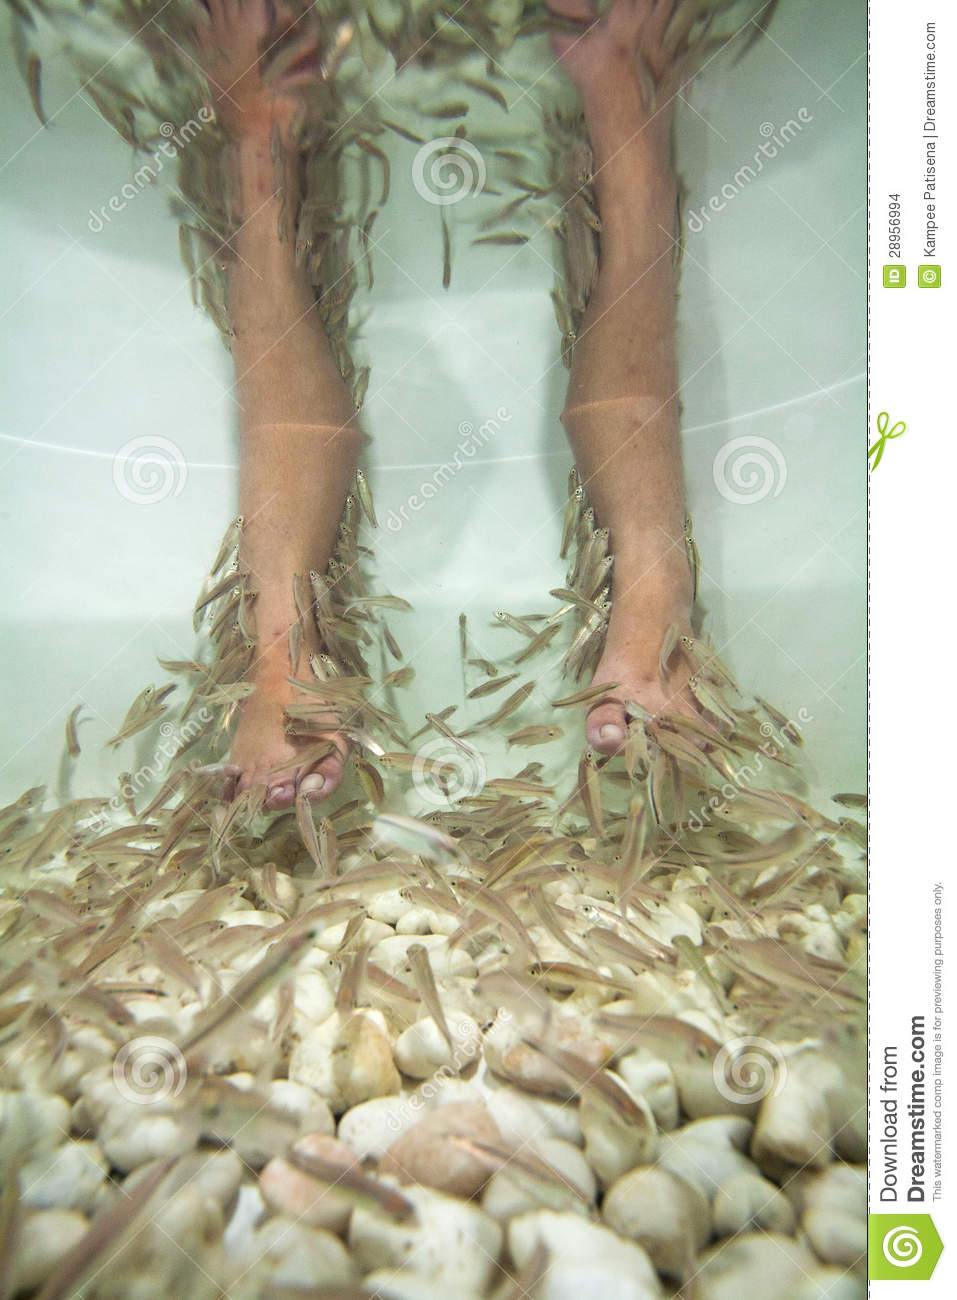 Fish spa pedicure treatment stock images image 28956994 for Fish spa treatment